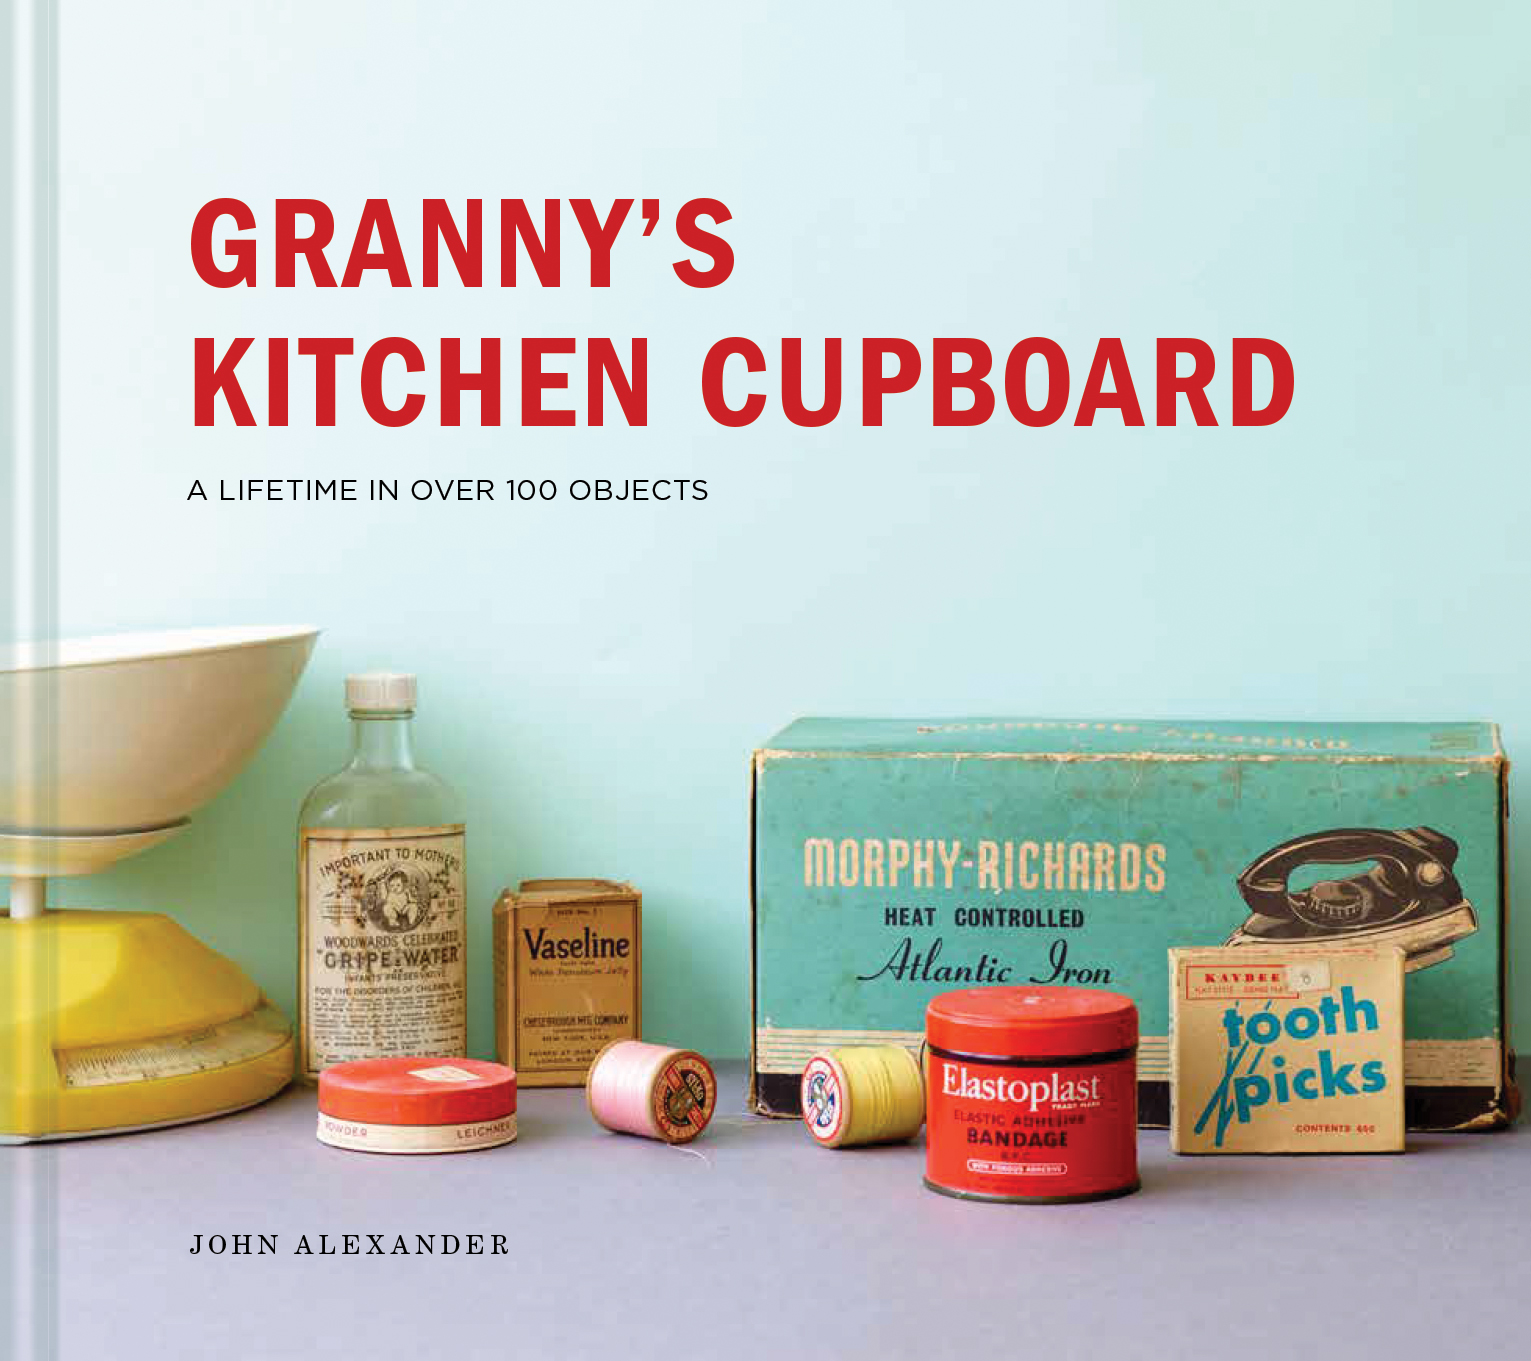 Granny's Kitchen Cupboard